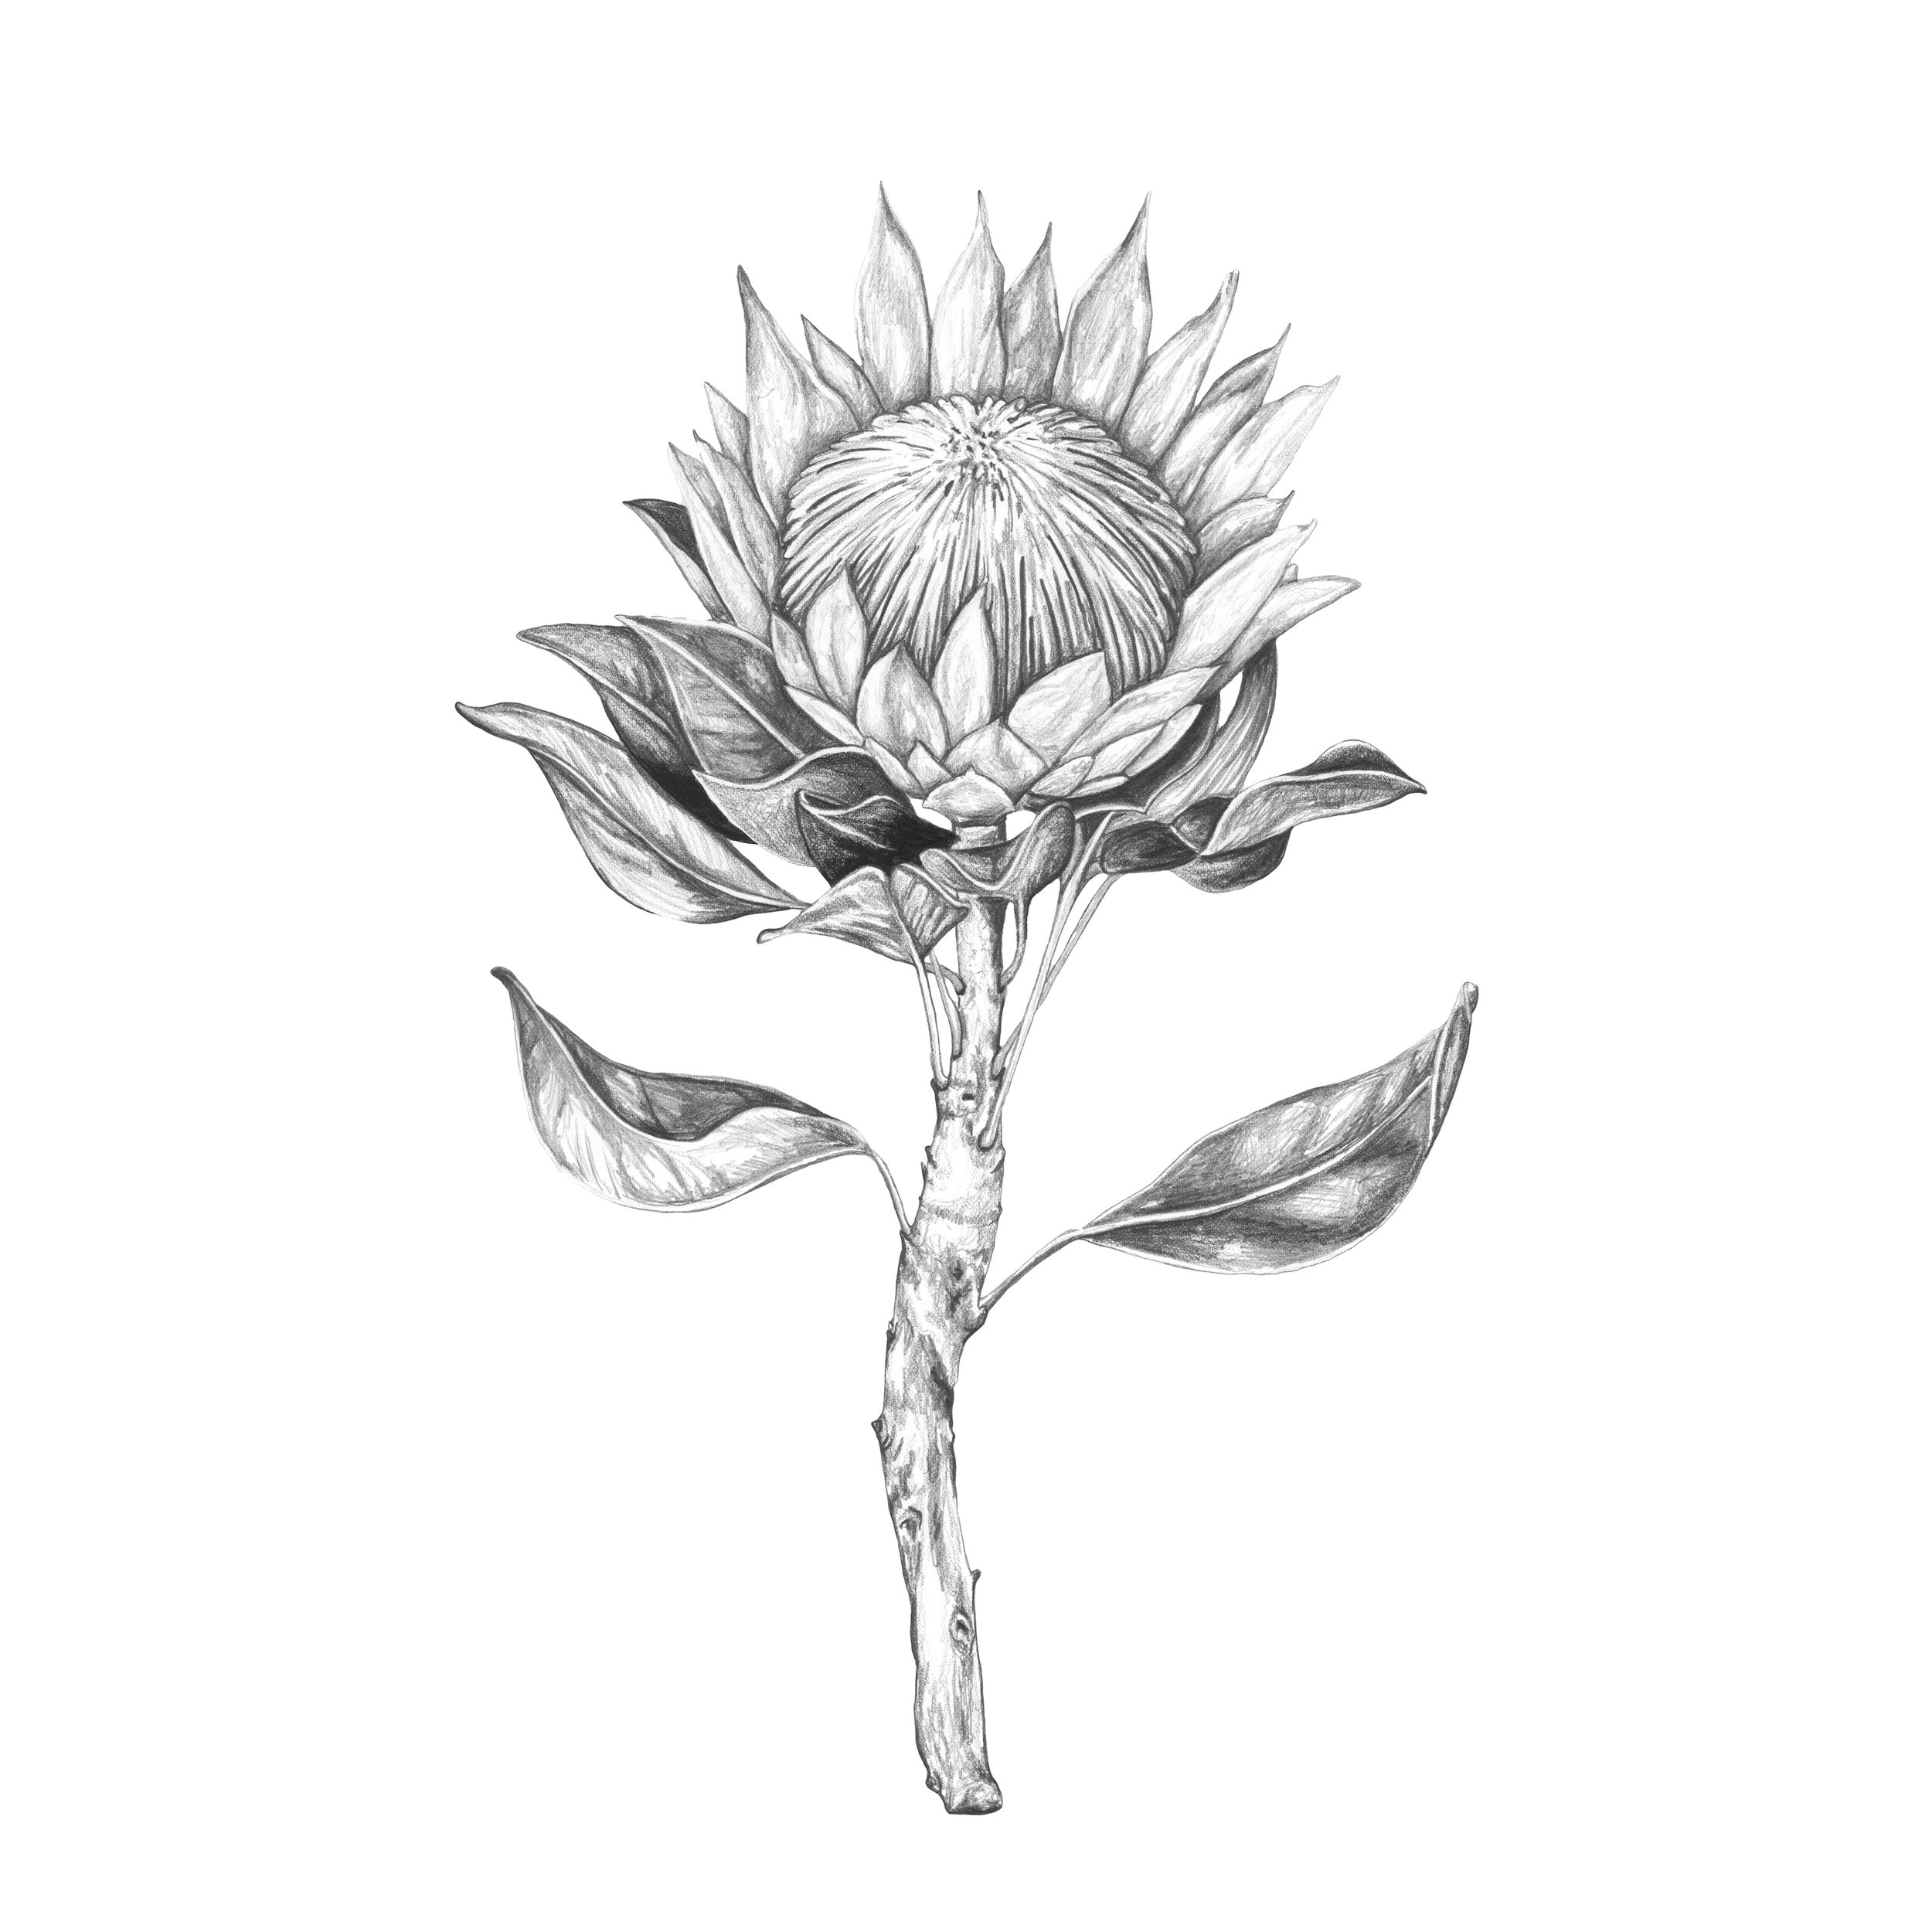 King Protea Artwork Painting Grapite Pencil drawing art limited edition print by paula formosa australian southa african flora